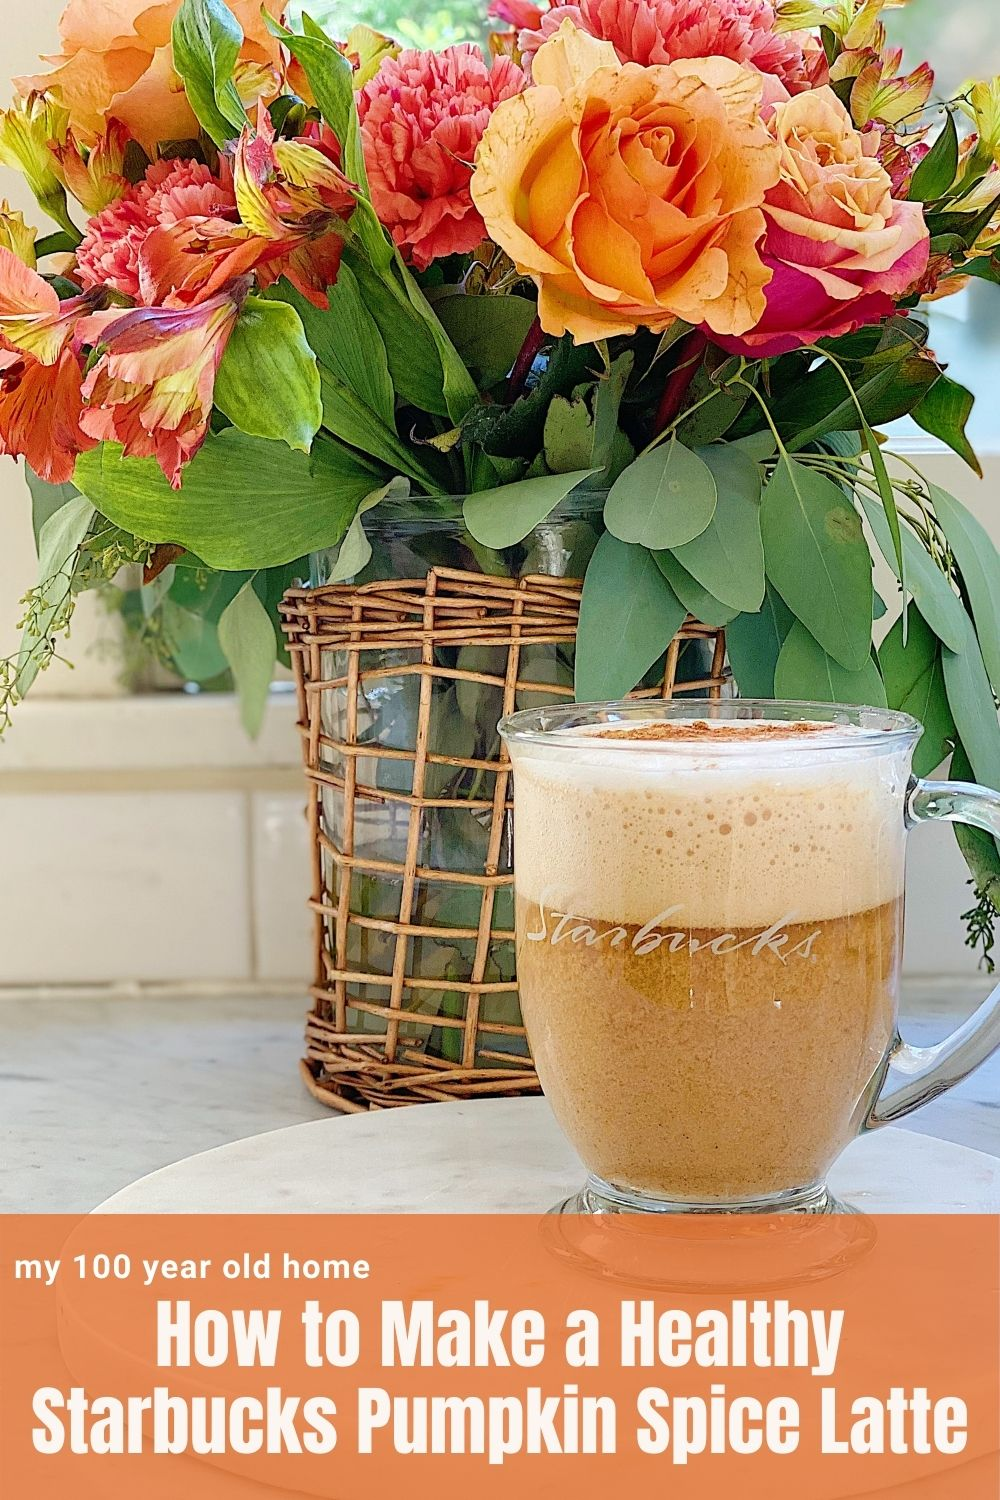 Everybody loves the Pumpkin Spice Latte Starbucks drink. Today I am sharing a healthy version that is gluten-free and dairy-free. It's a great copy-cat healthy recipe!